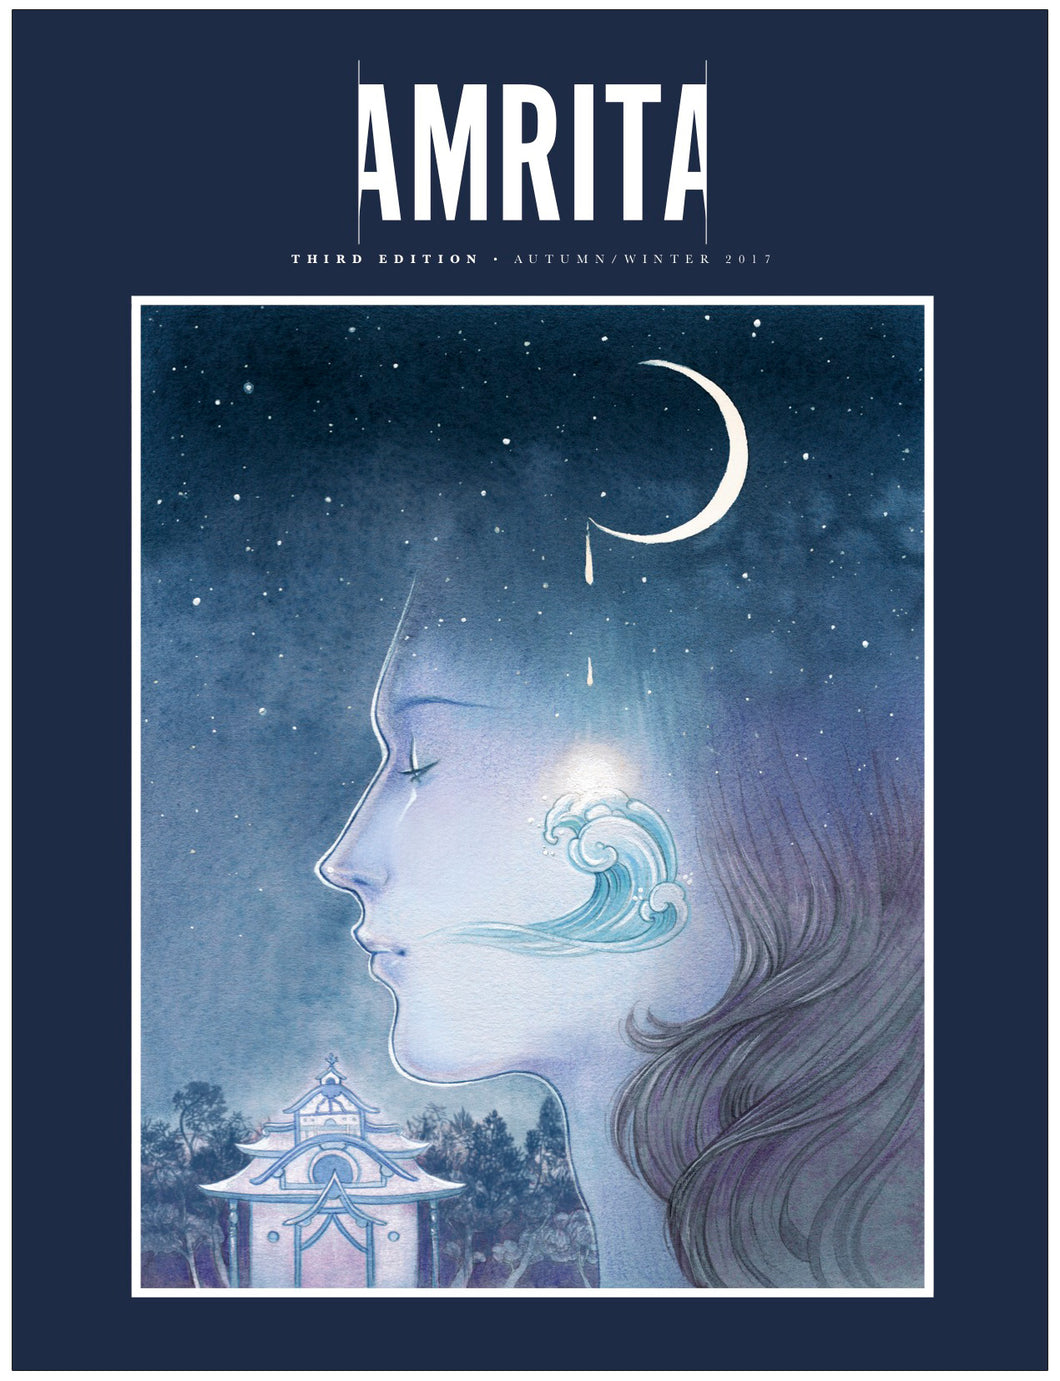 Digital AMRITA Magazine - Issue 3